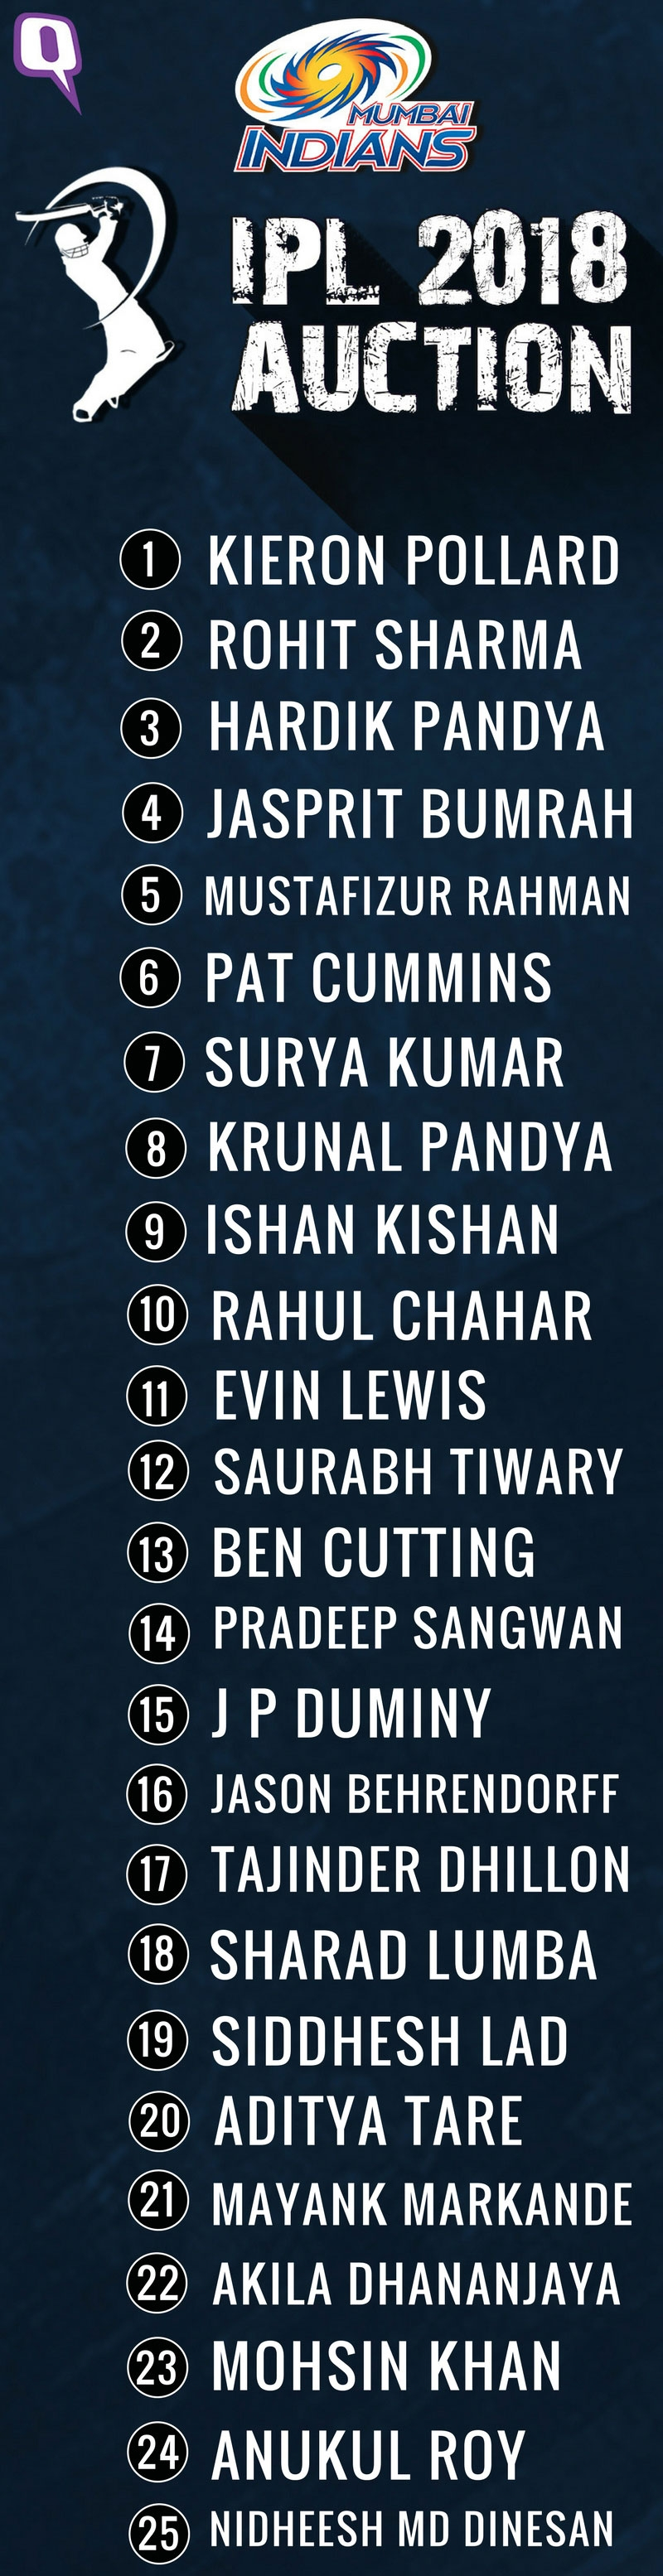 Mumbai Indians team composition for IPL 2018.